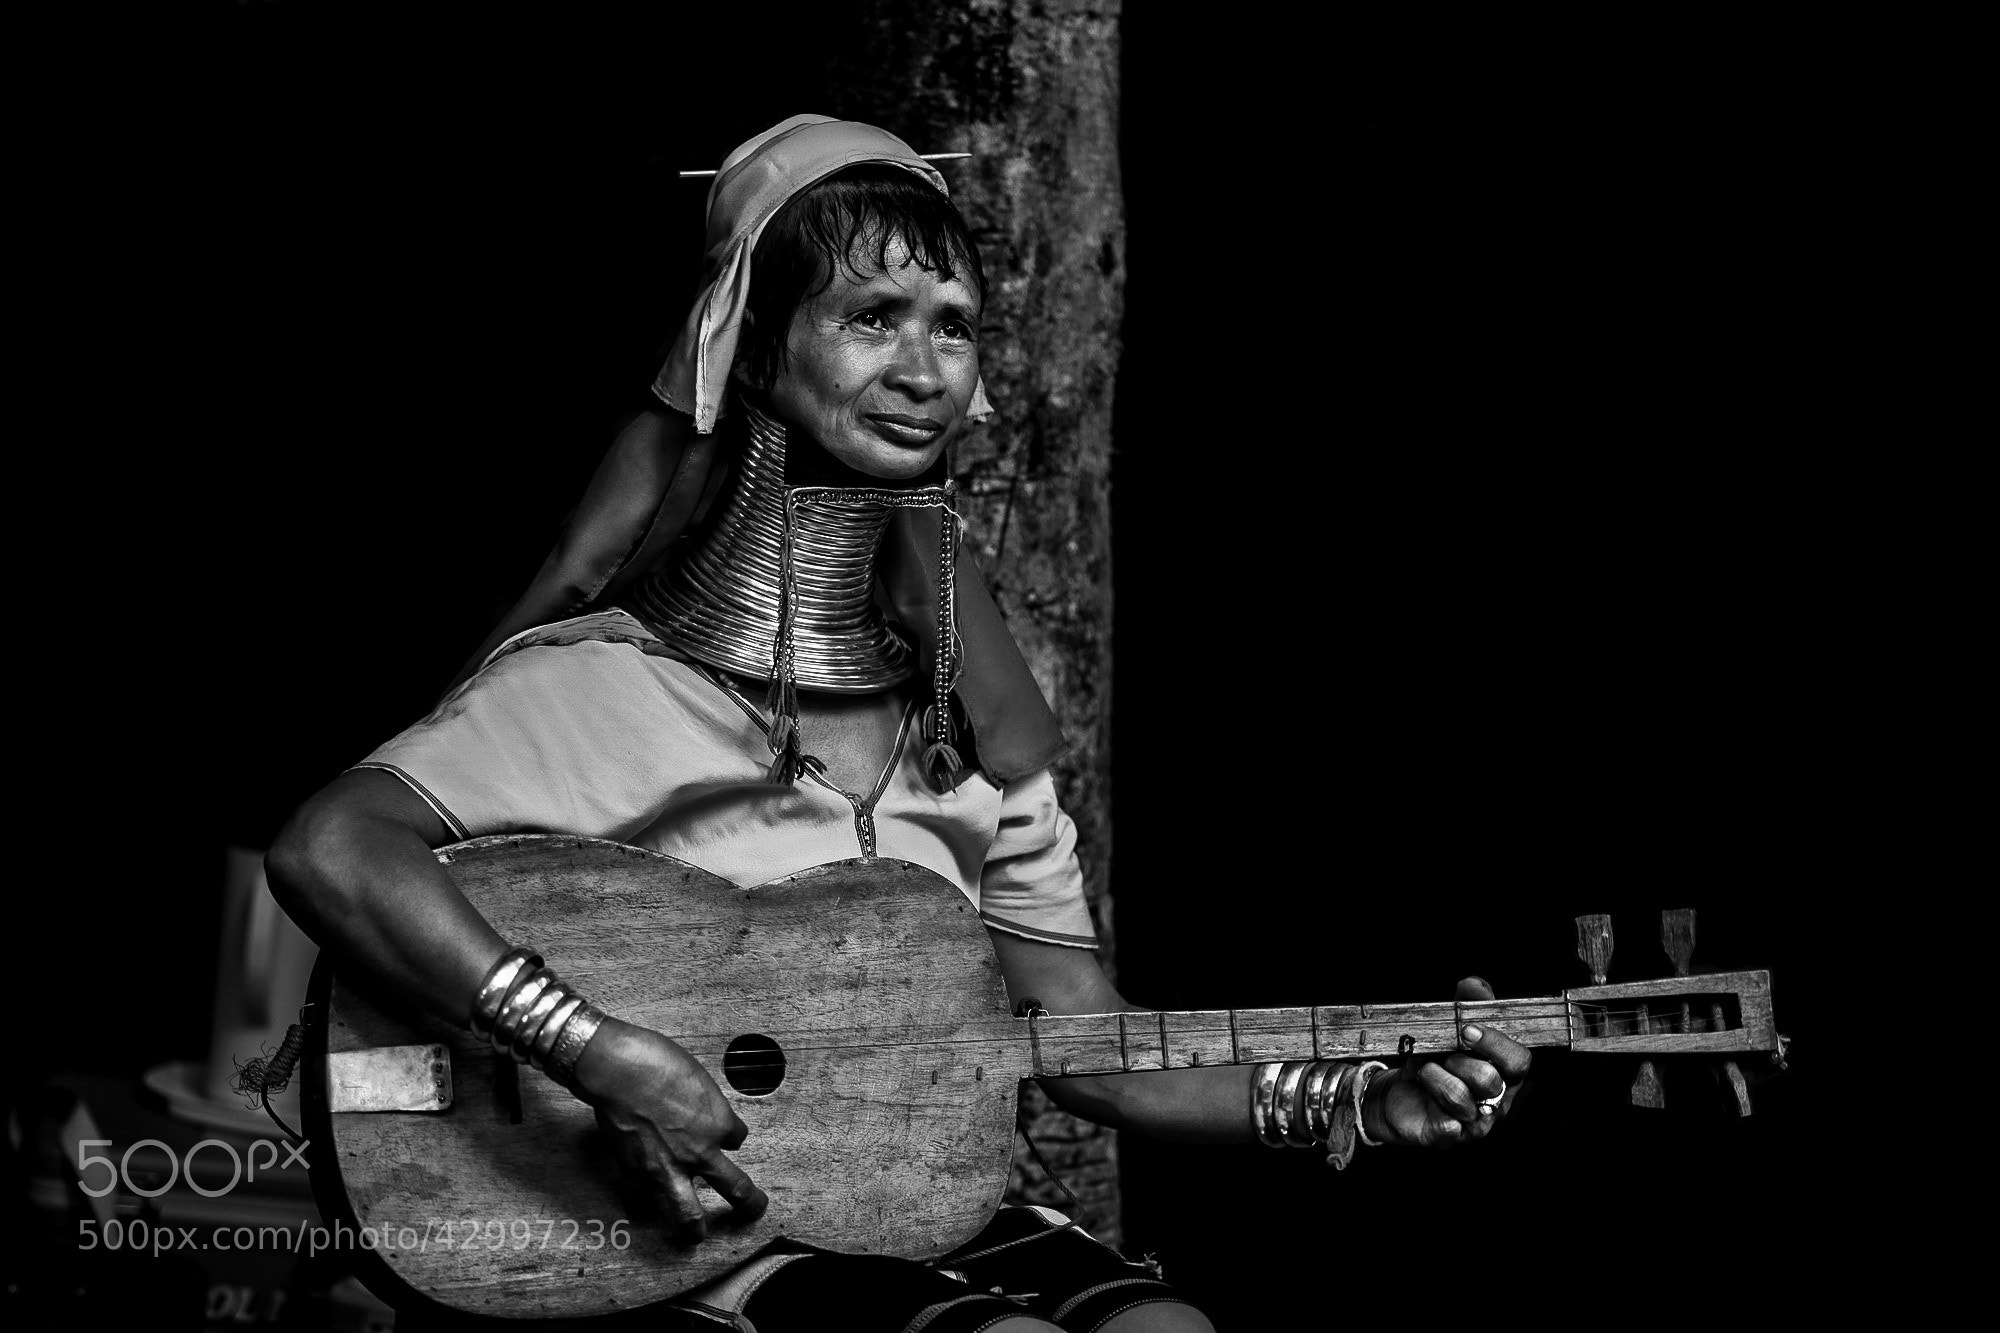 Photograph Music From The Heart by Guy HIGHLANDER on 500px